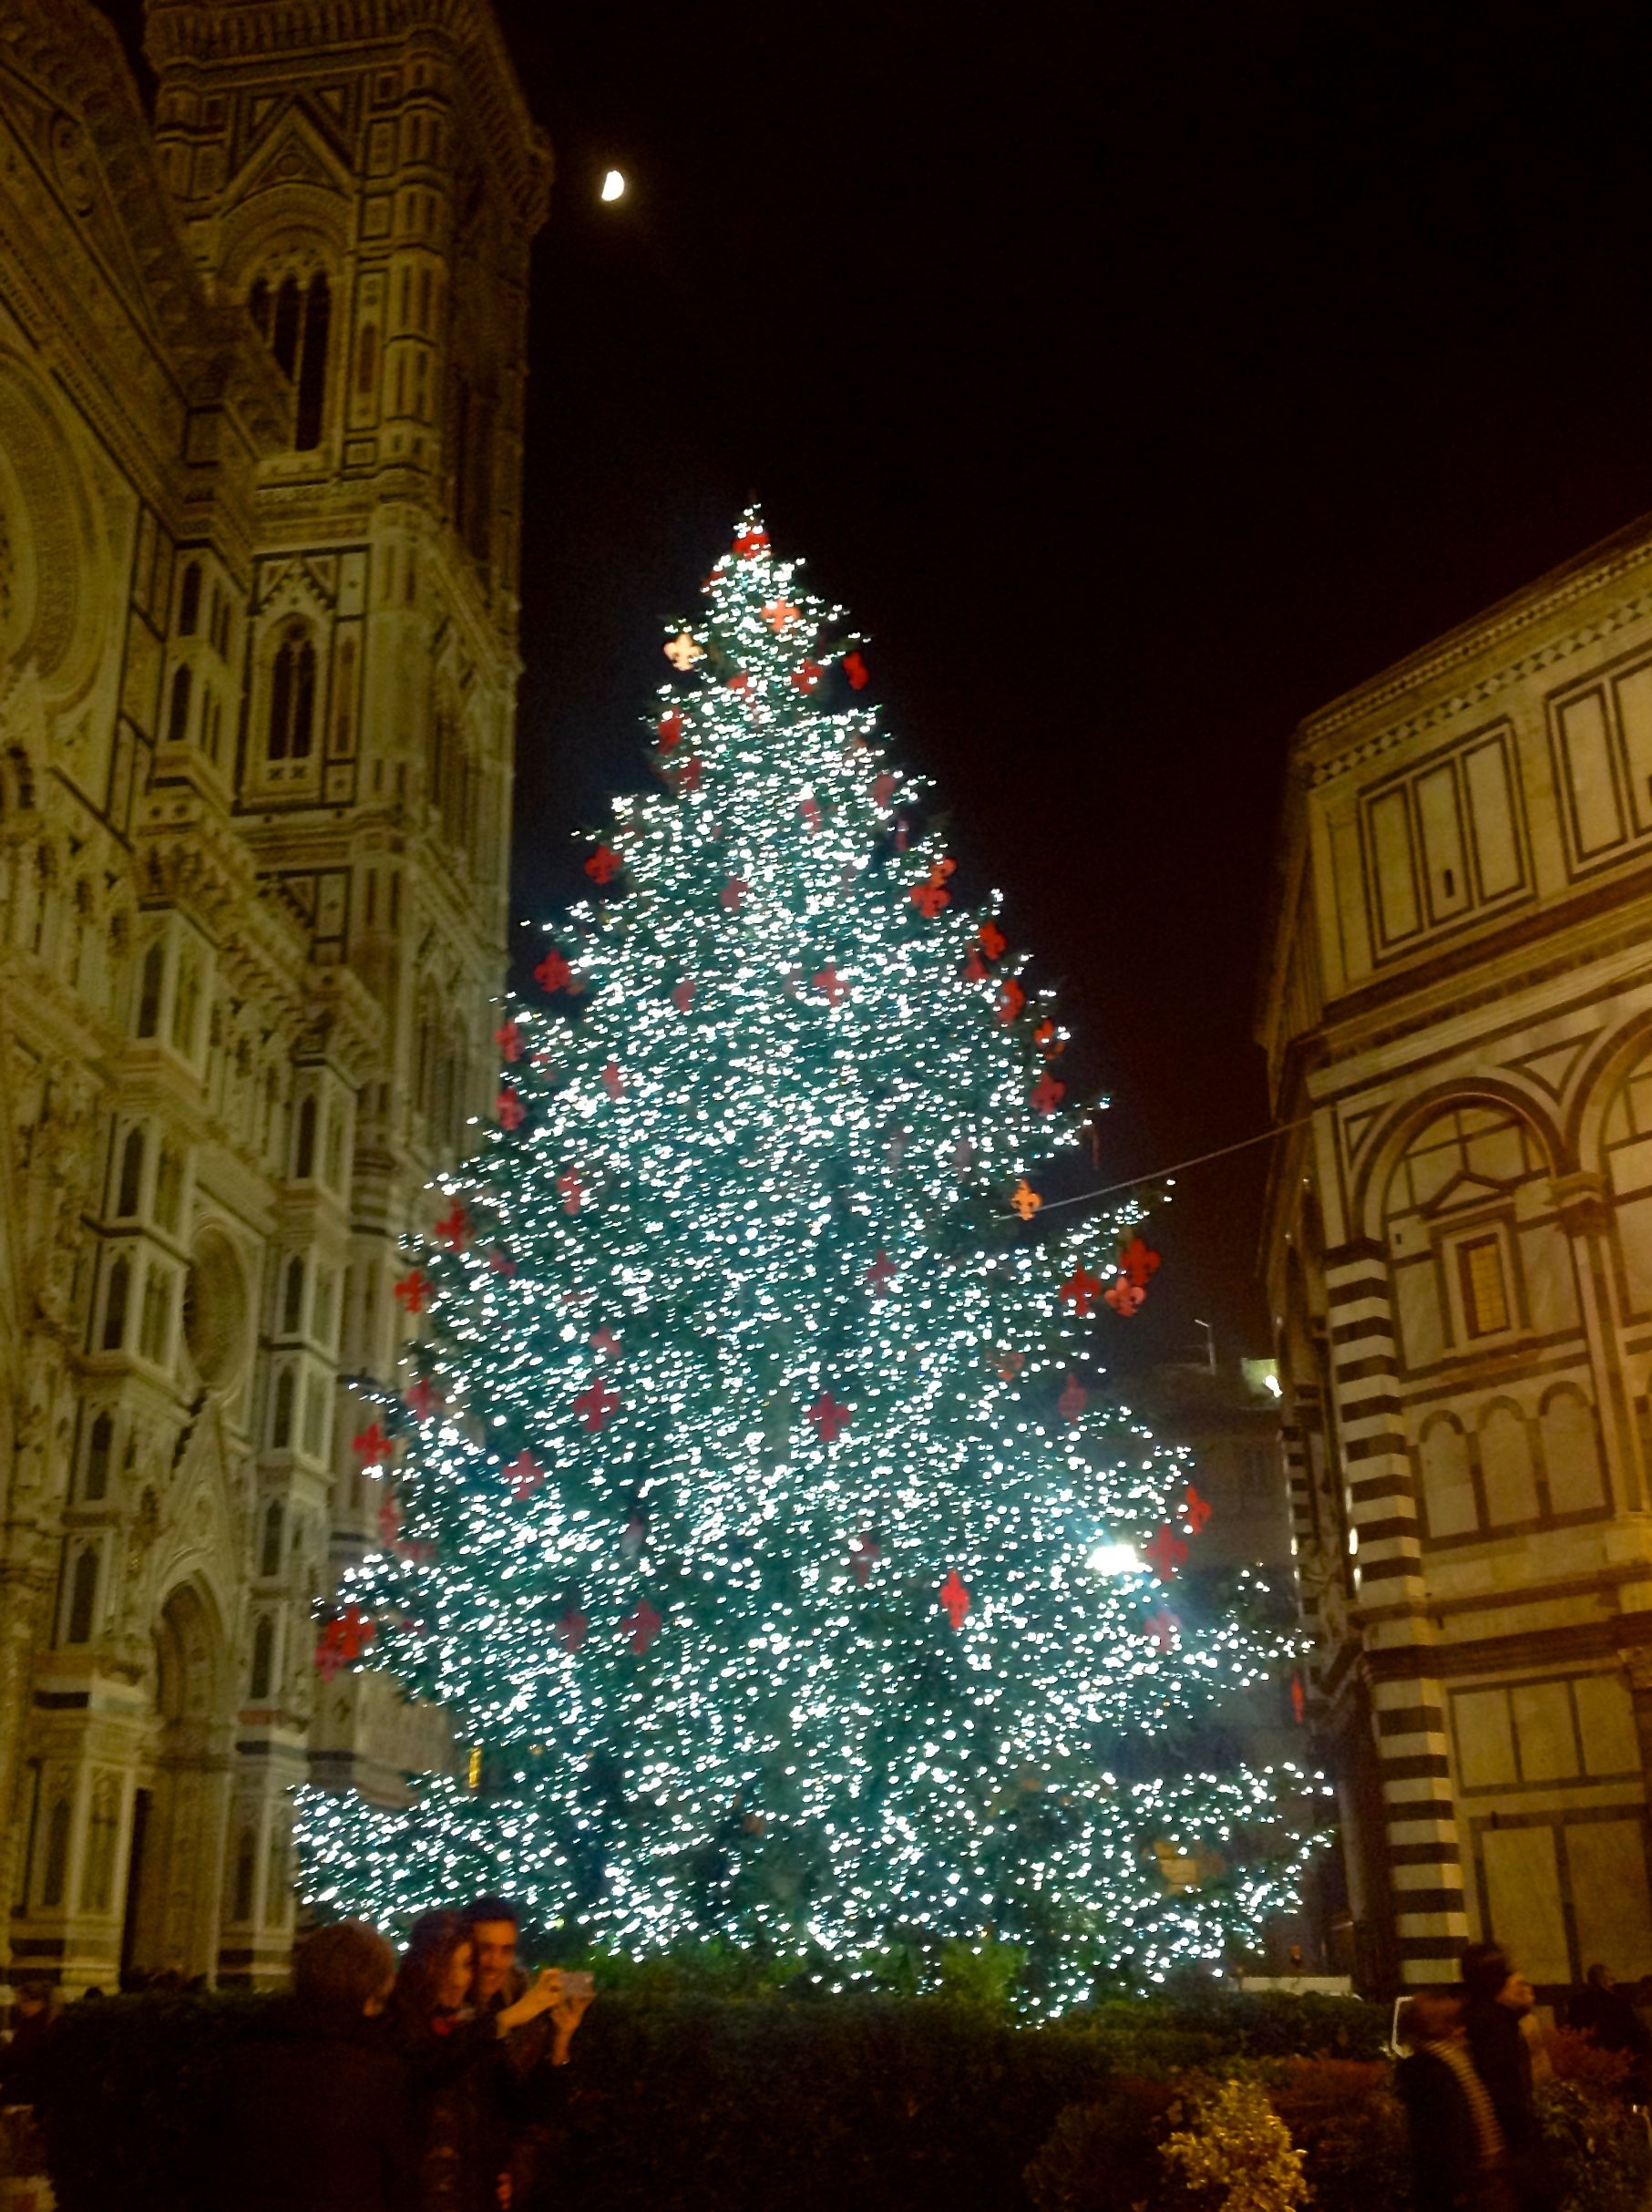 The huge #Christmas #tree in Piazza Duomo #Florence #decoration